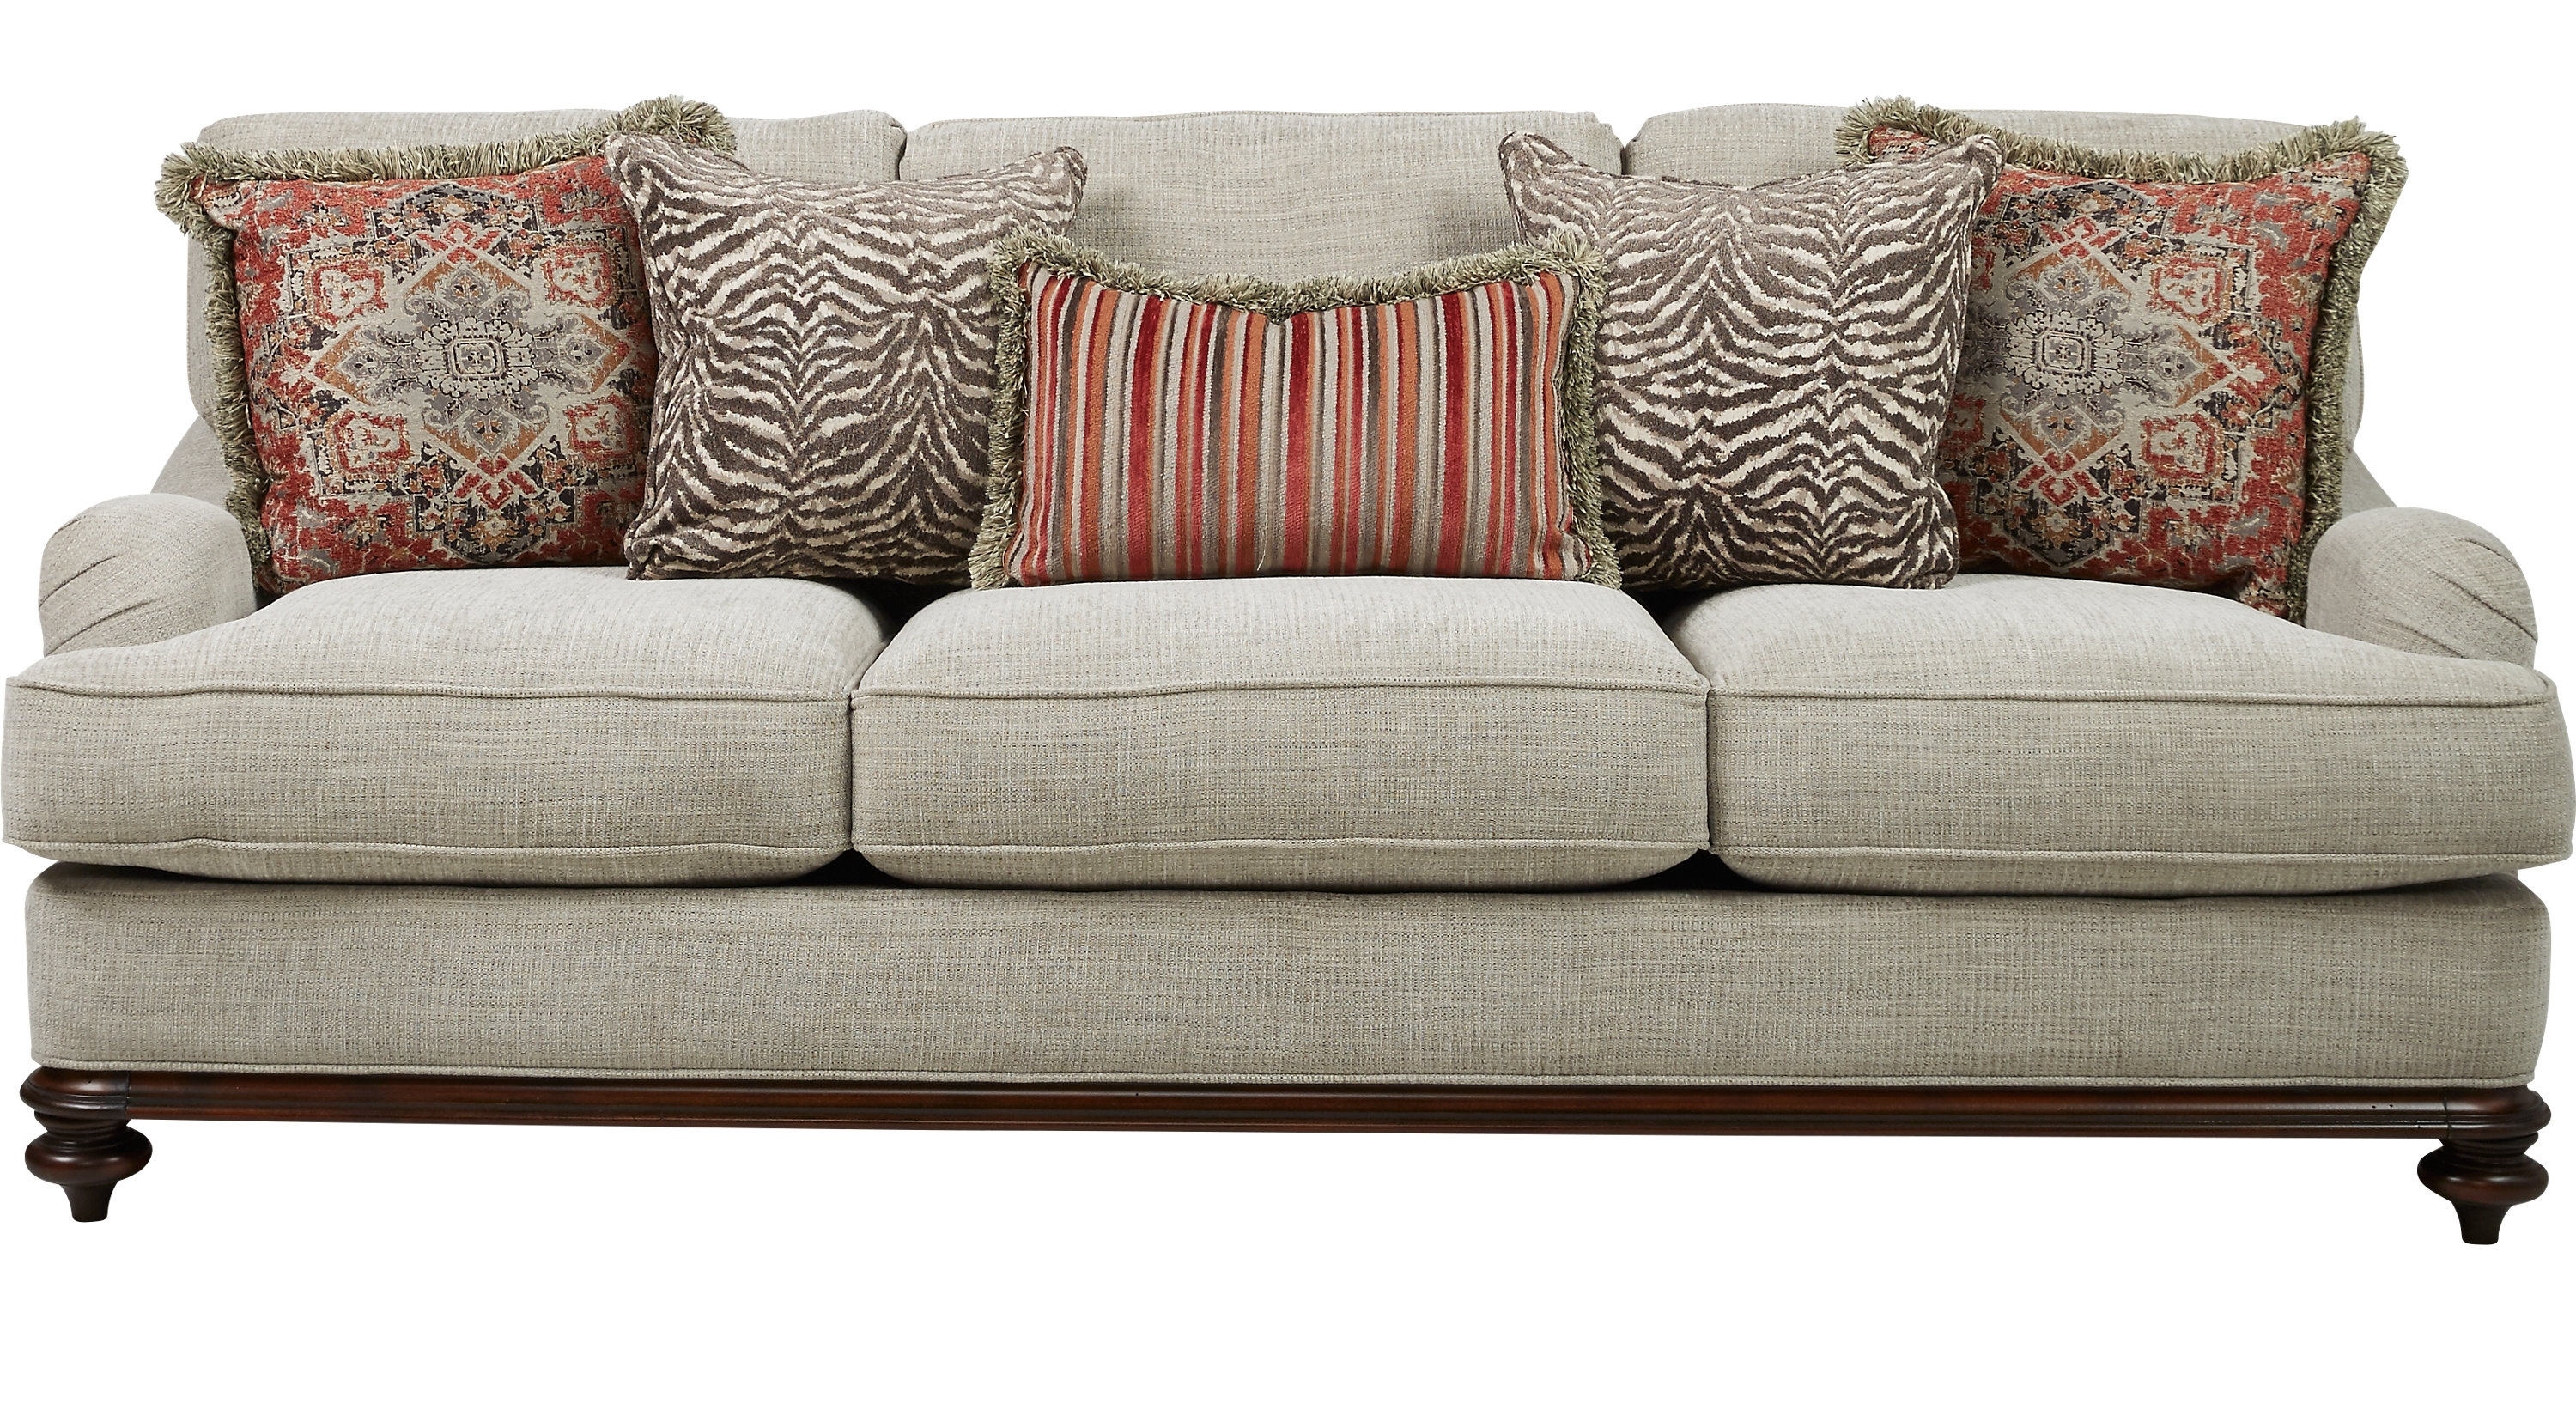 Newest $899.99 – Bali Breeze Taupe (grayish Brown) Sofa – Classic Intended For Cindy Crawford Sofas (Gallery 3 of 20)